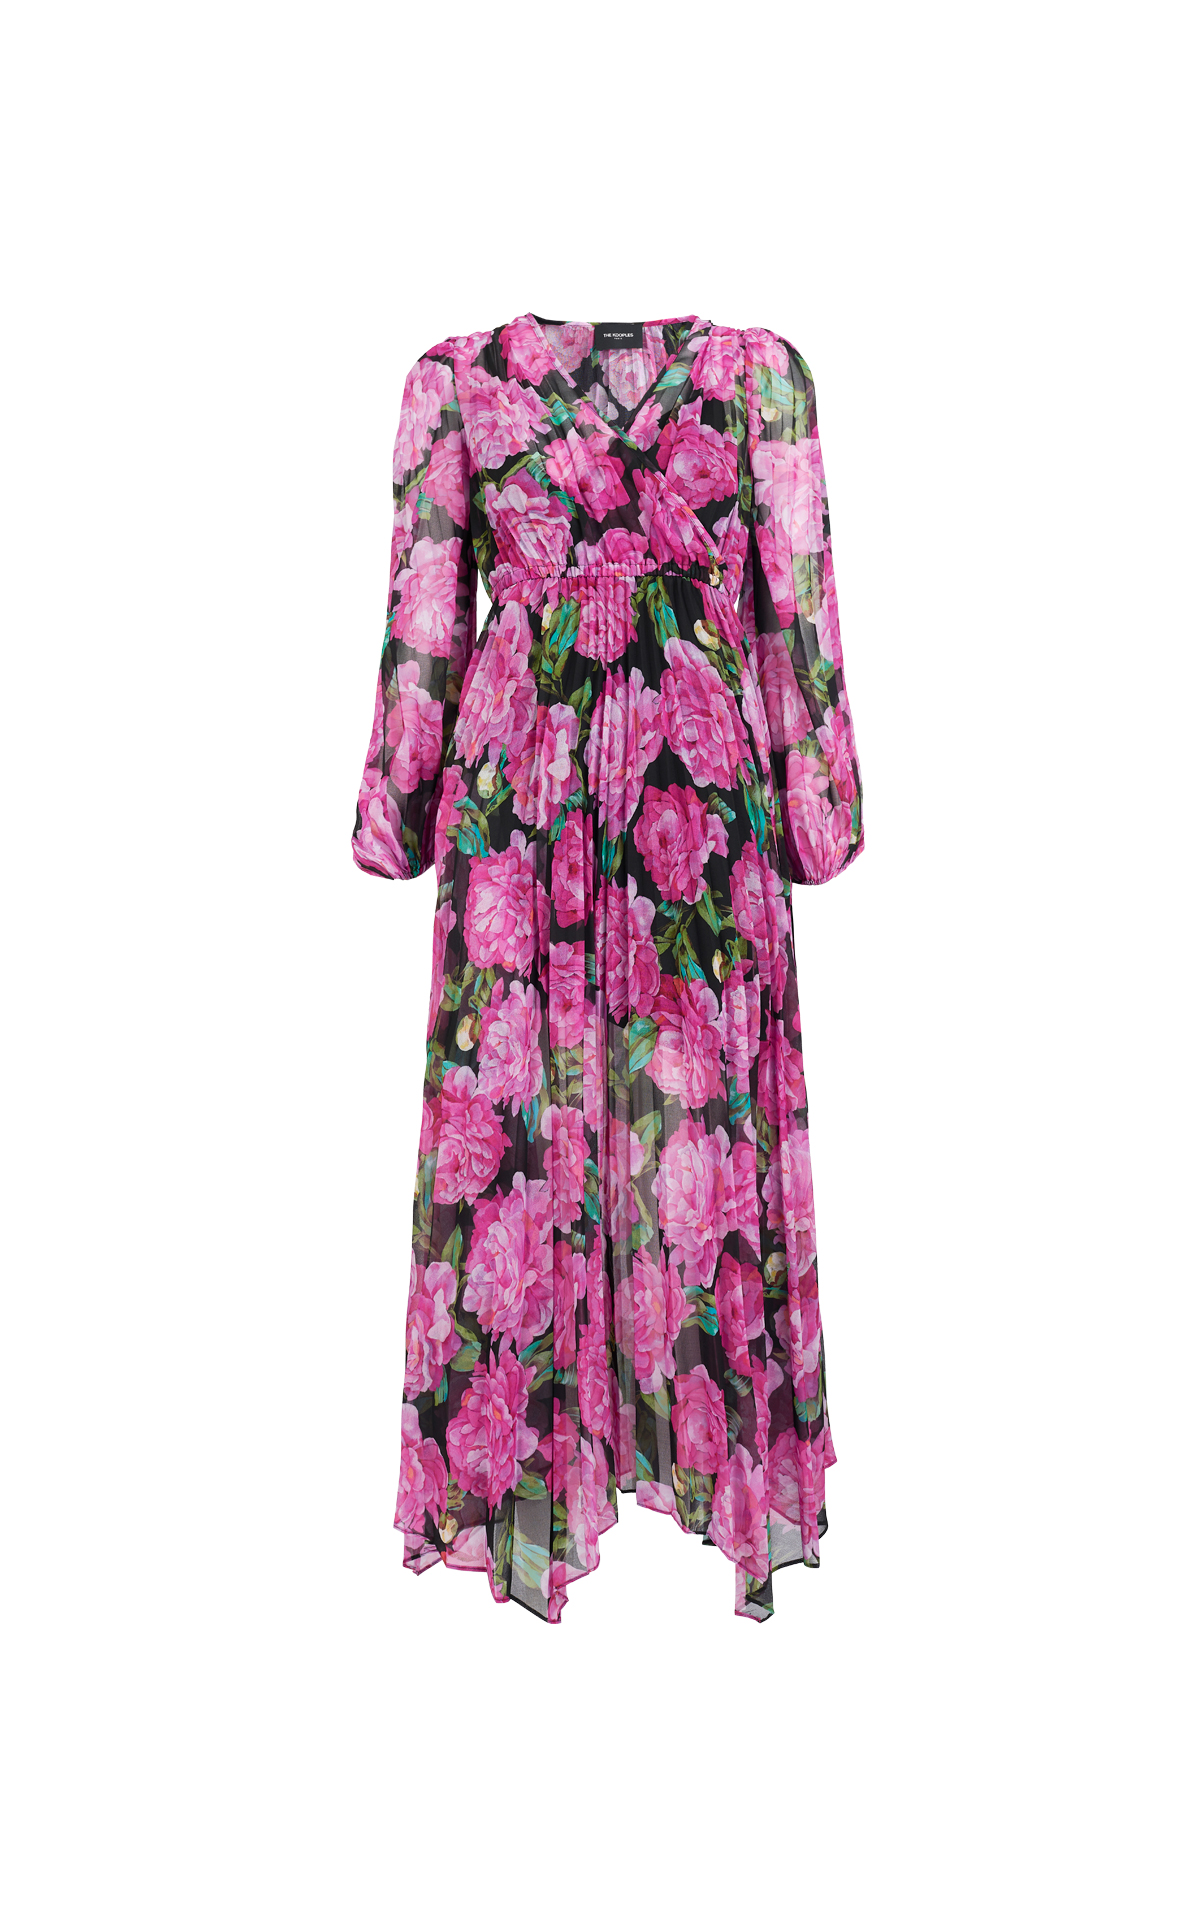 Pink flowered dress The Kooples